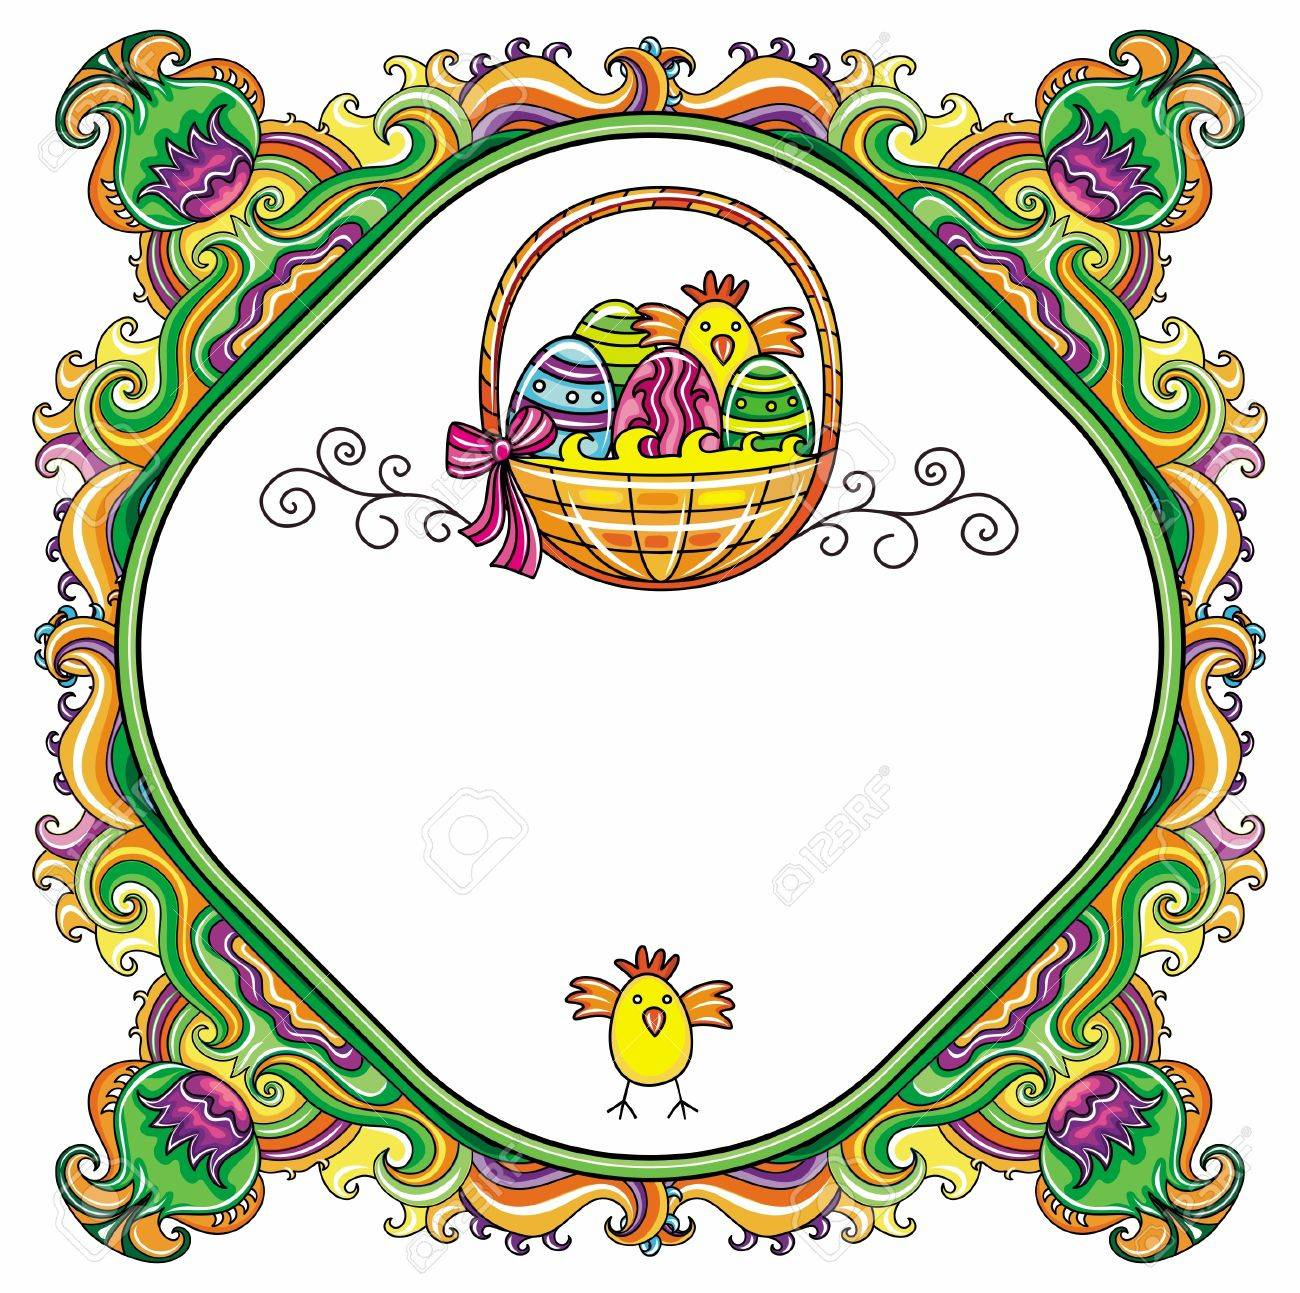 easter frame royalty free cliparts vectors and stock